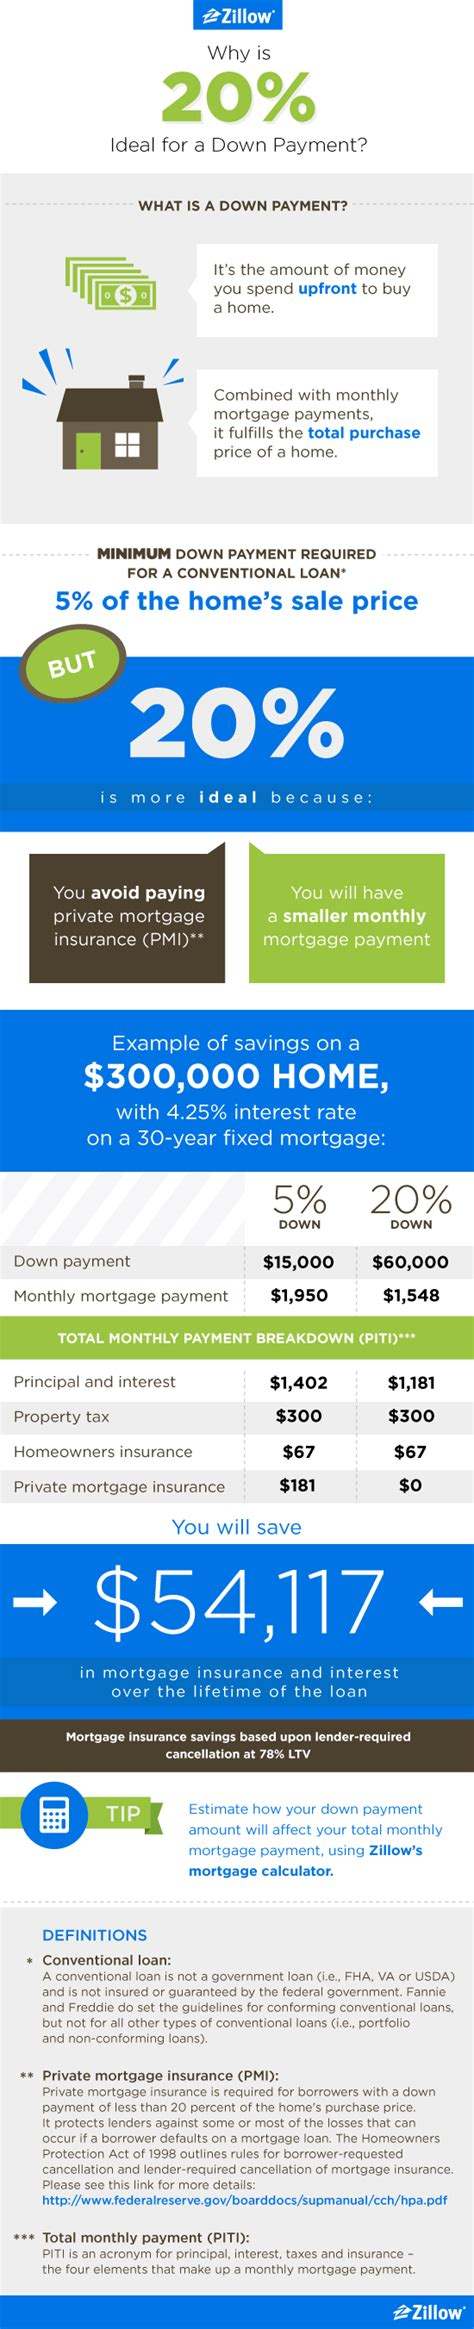 buying a house with less than 20 down putting a down payment on a home seek the 20 solution aol finance